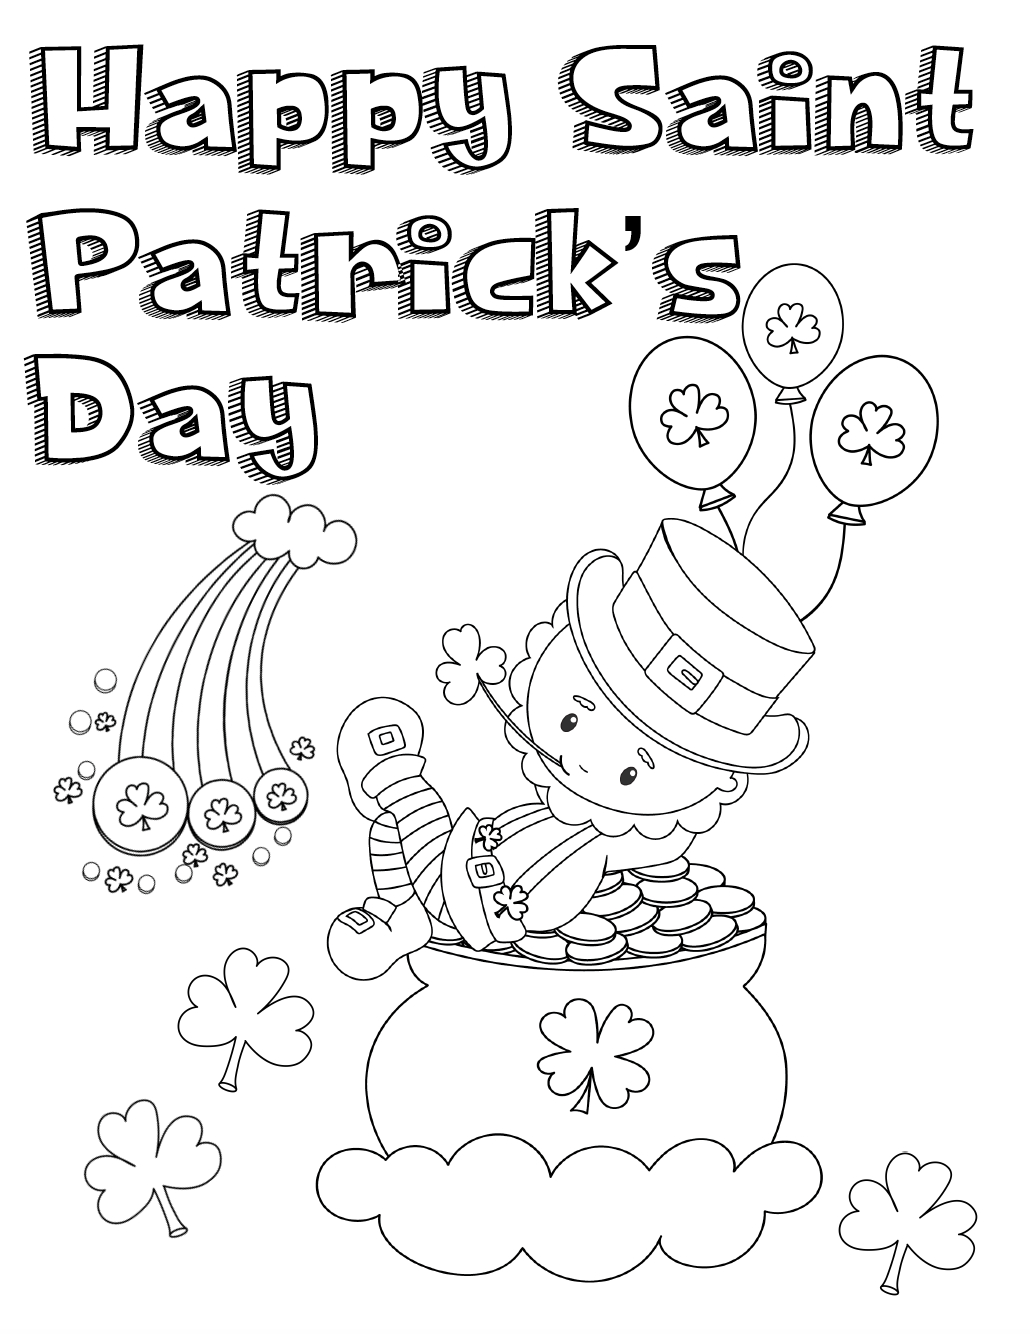 Free Printable St. Patrick's Day Coloring Pages: 4 Designs! - Free Printable Saint Patrick Coloring Pages